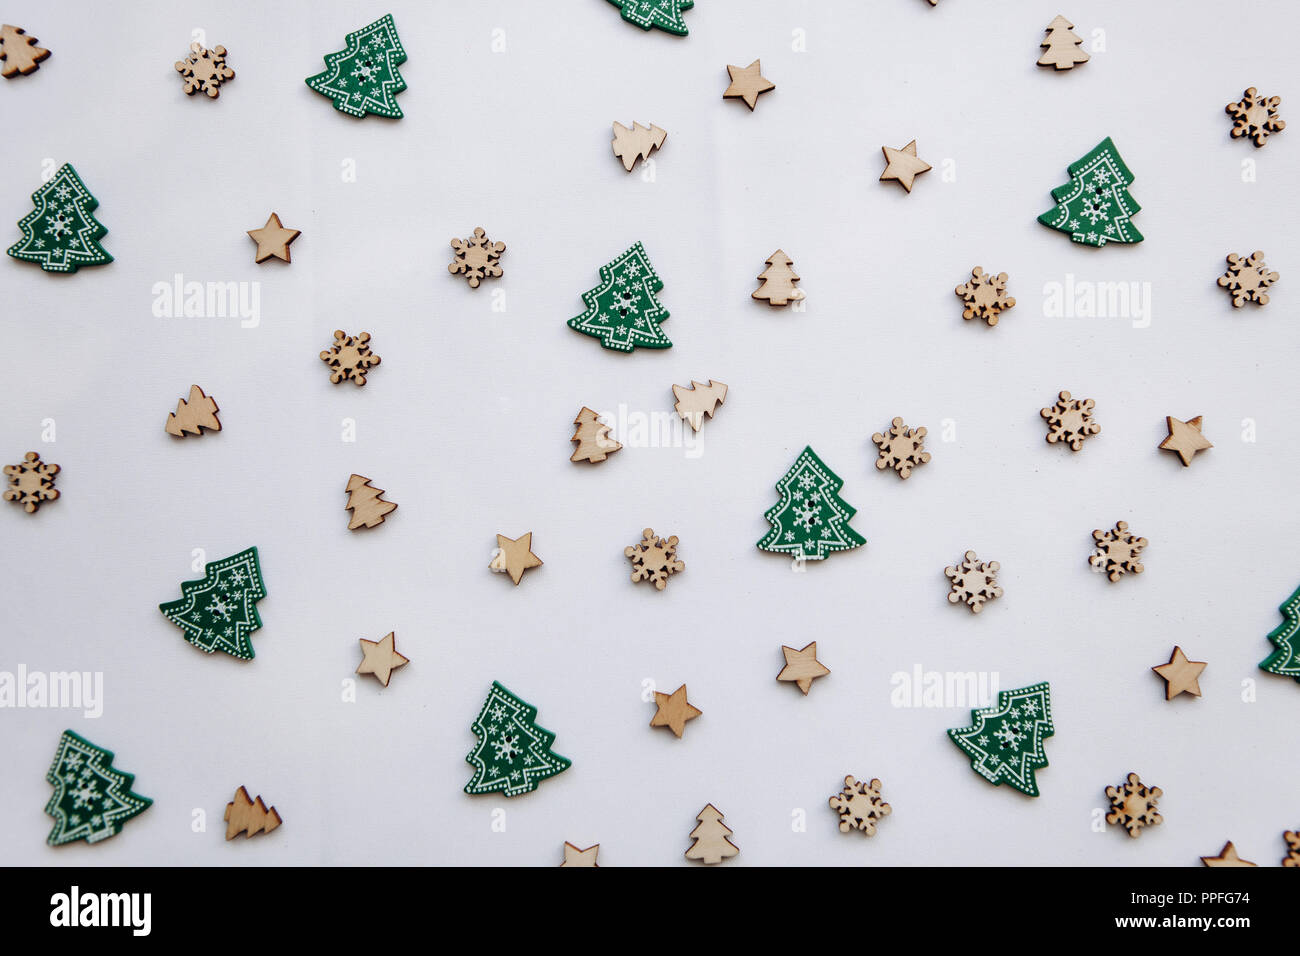 Small Wooden Christmas Trees And Snowflakes Festive Decorated Background Christmas Or New Year S Concept In A Minimalist Style Stock Photo Alamy